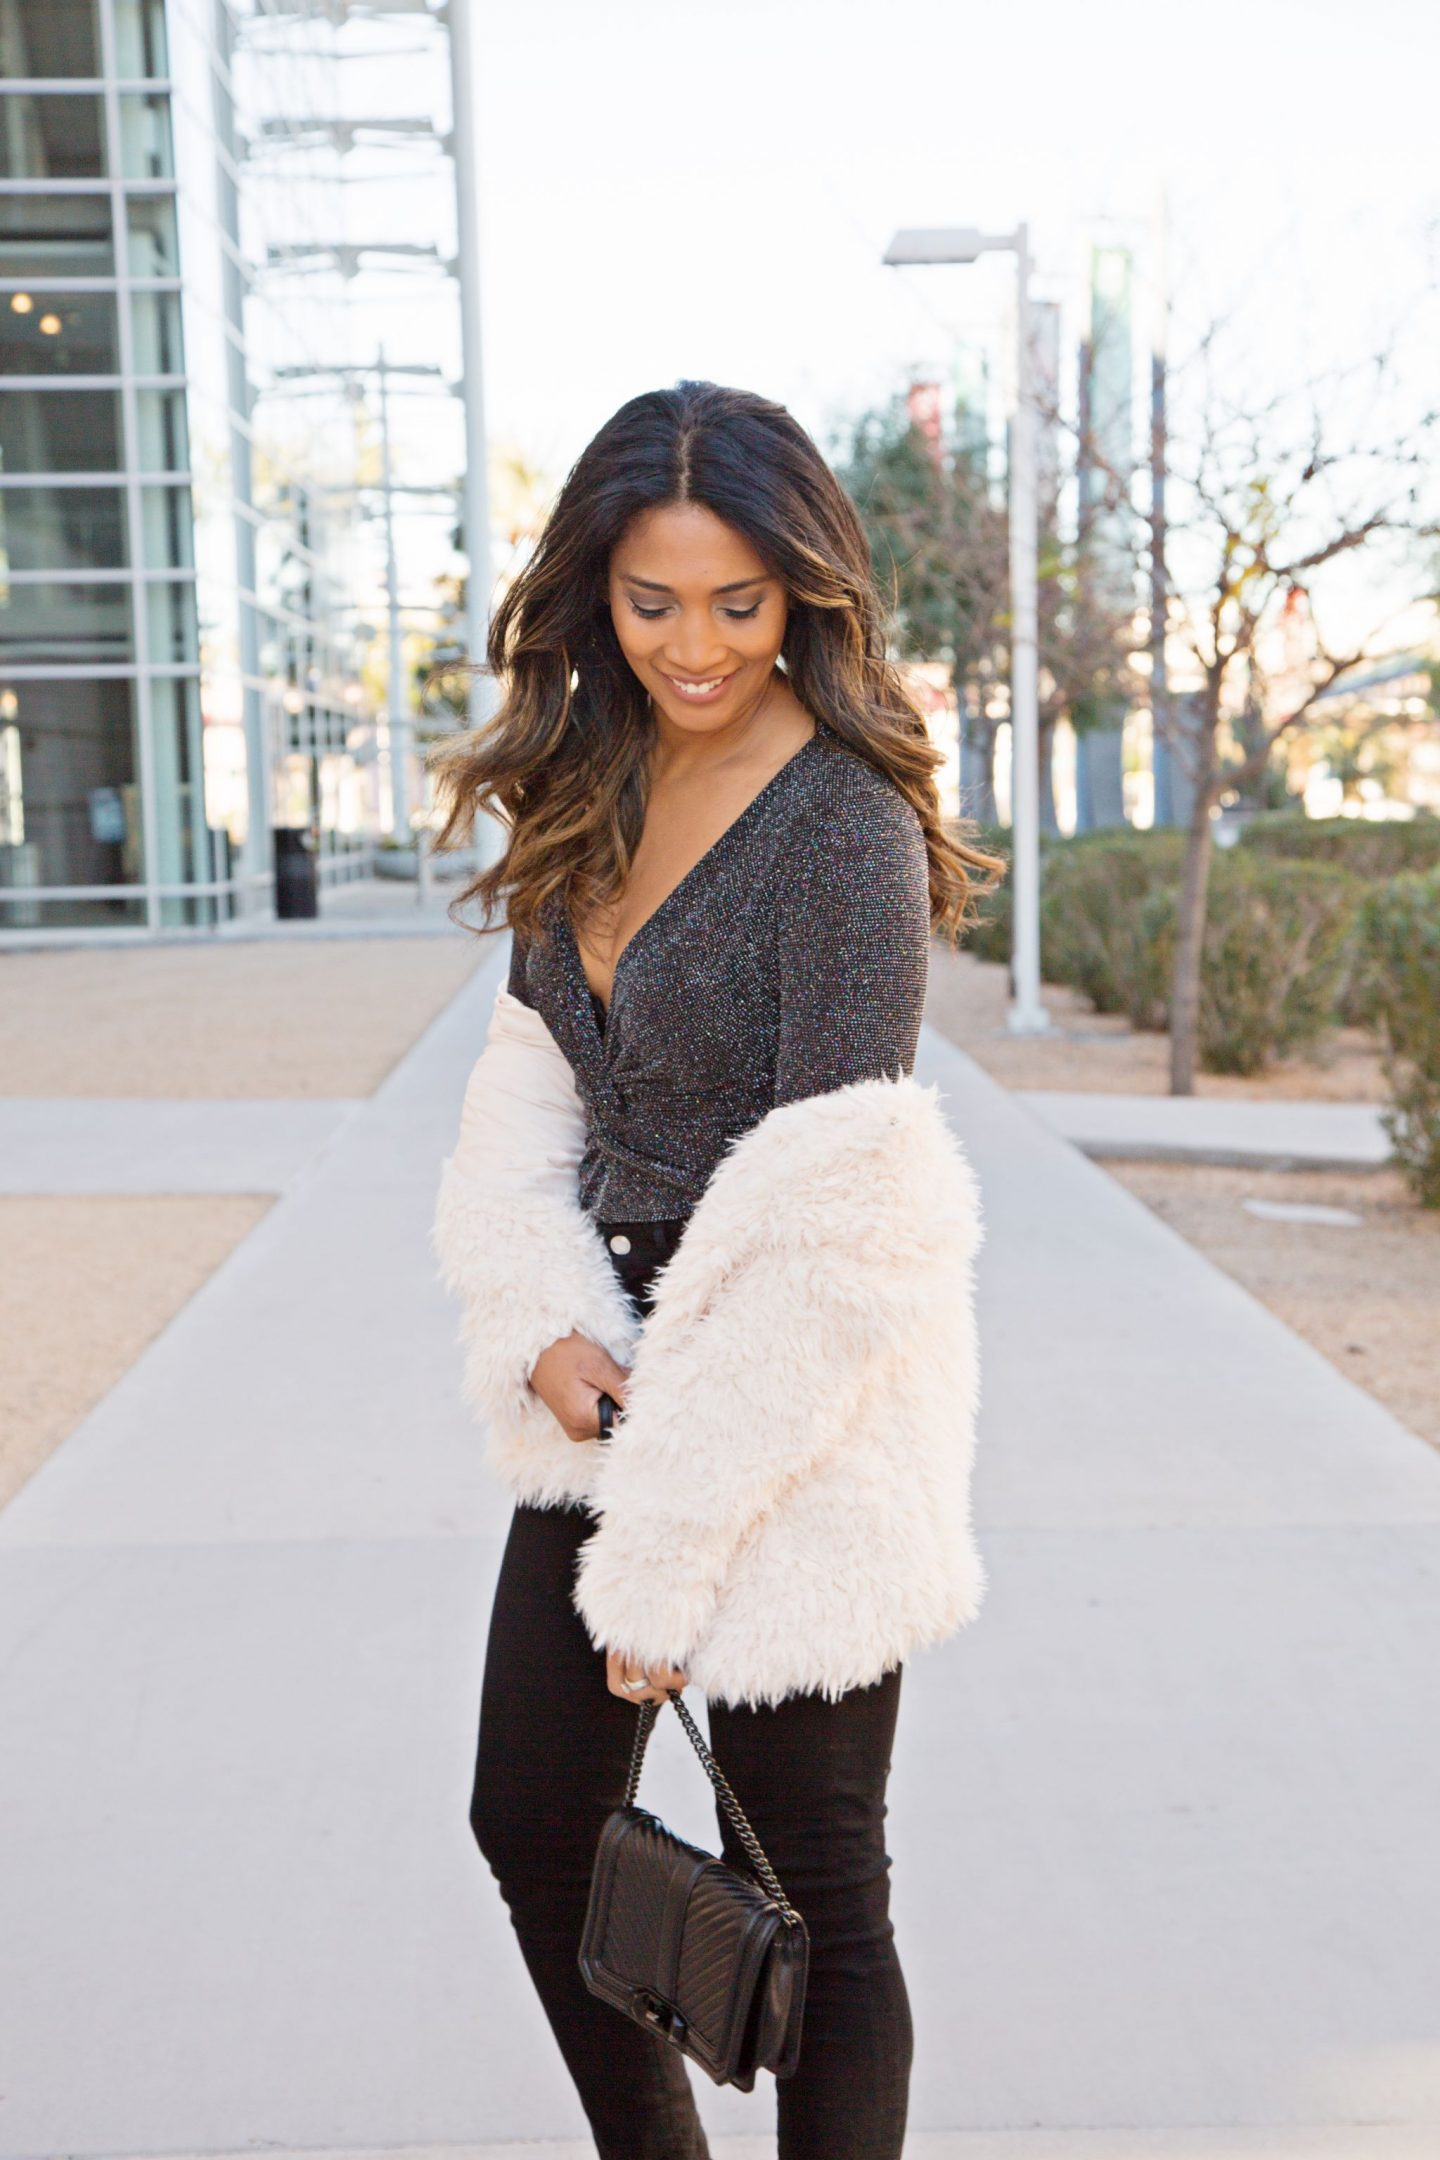 NEW YEARS OUTFIT, BODYSUIT, WHAT TO WEAR, PARTY OUTFIT, FASHION INSPO, SHAGGY JACKET, FAUX FUR